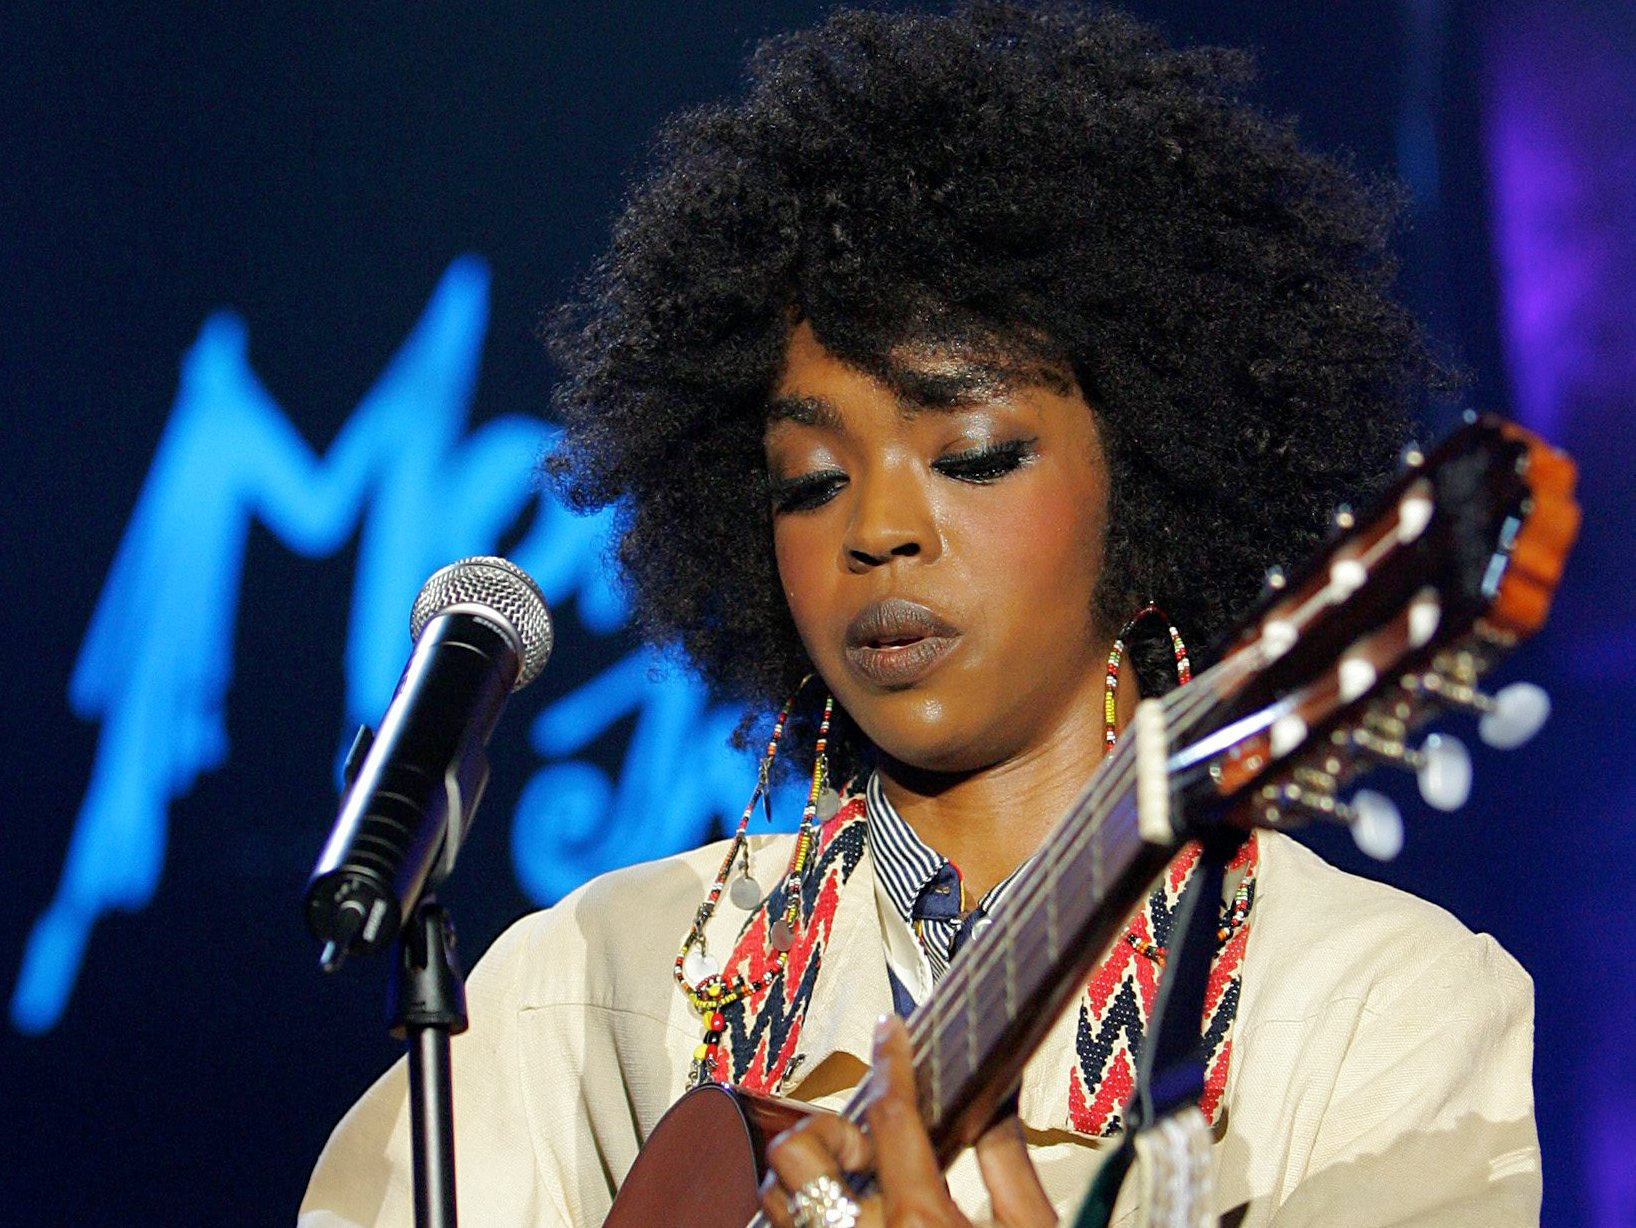 Lauryn Hill might have to sing her way thru jail bars soon.